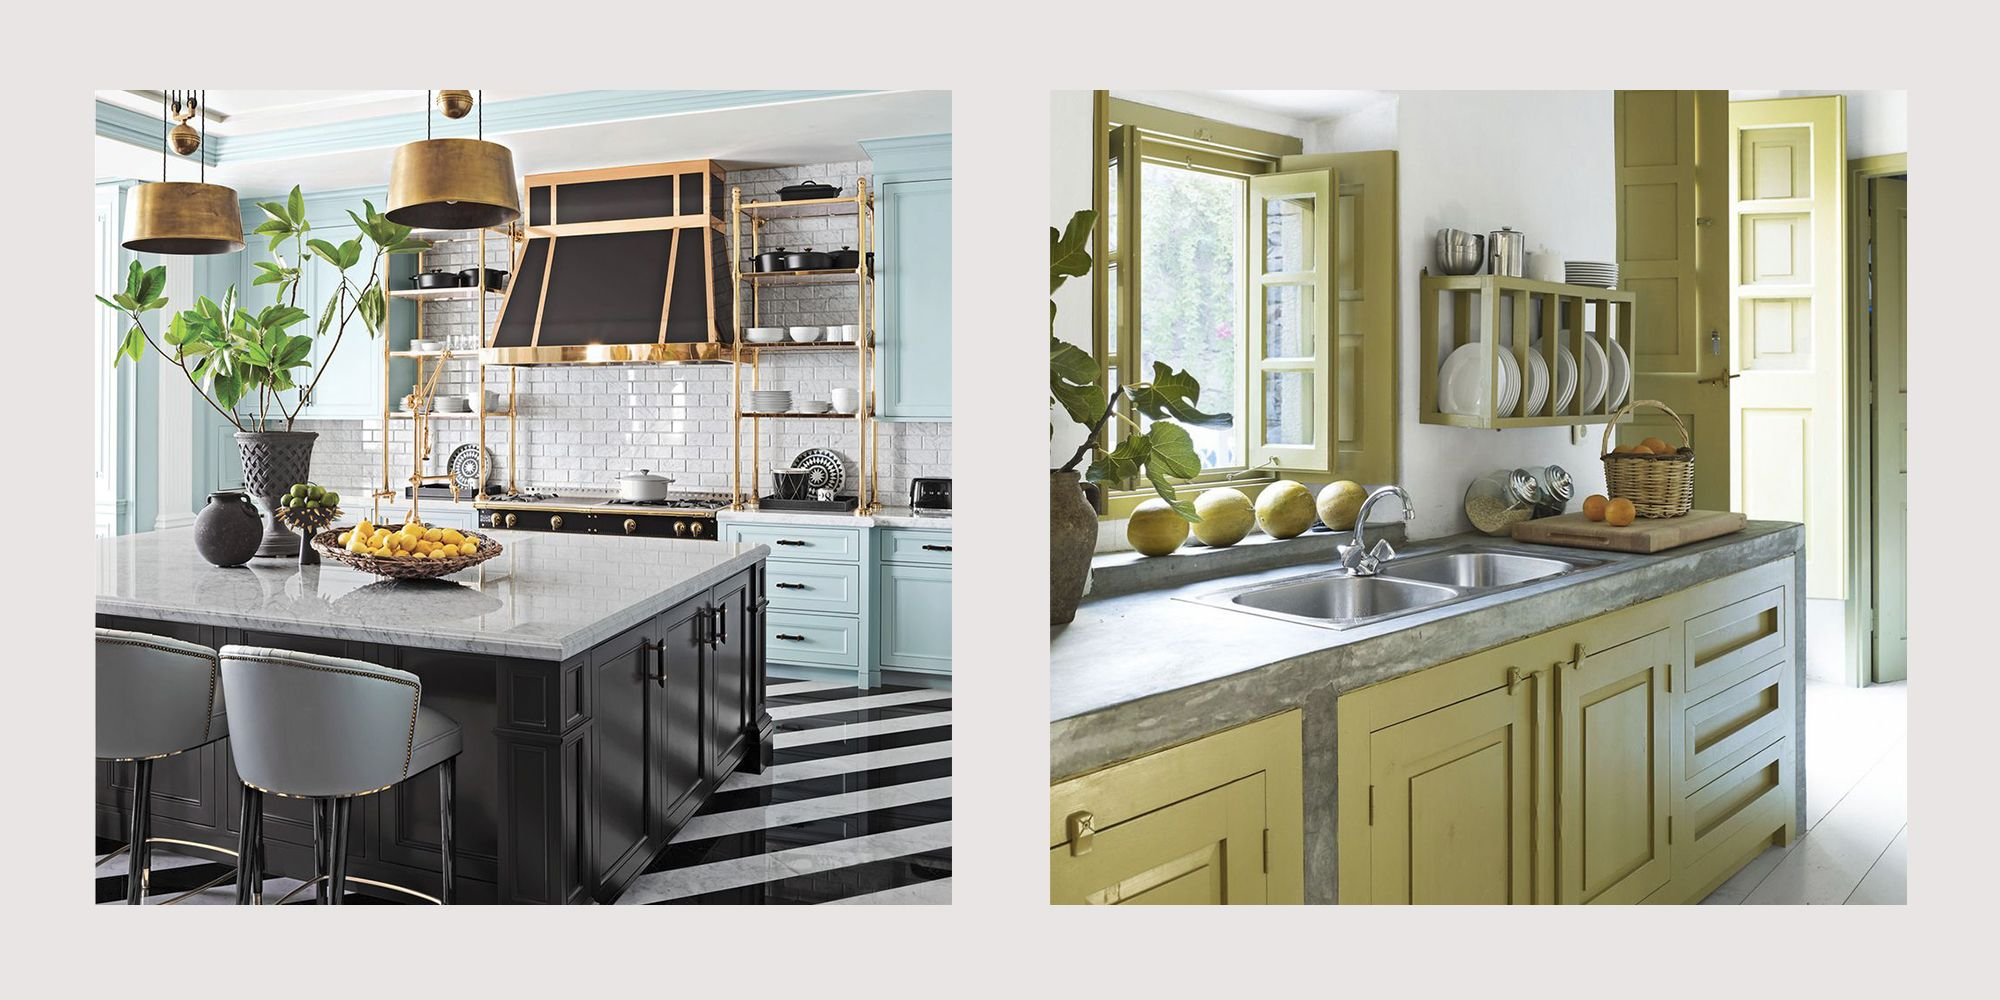 15 Best Painted Kitchen Cabinets   Ideas for Transforming ...